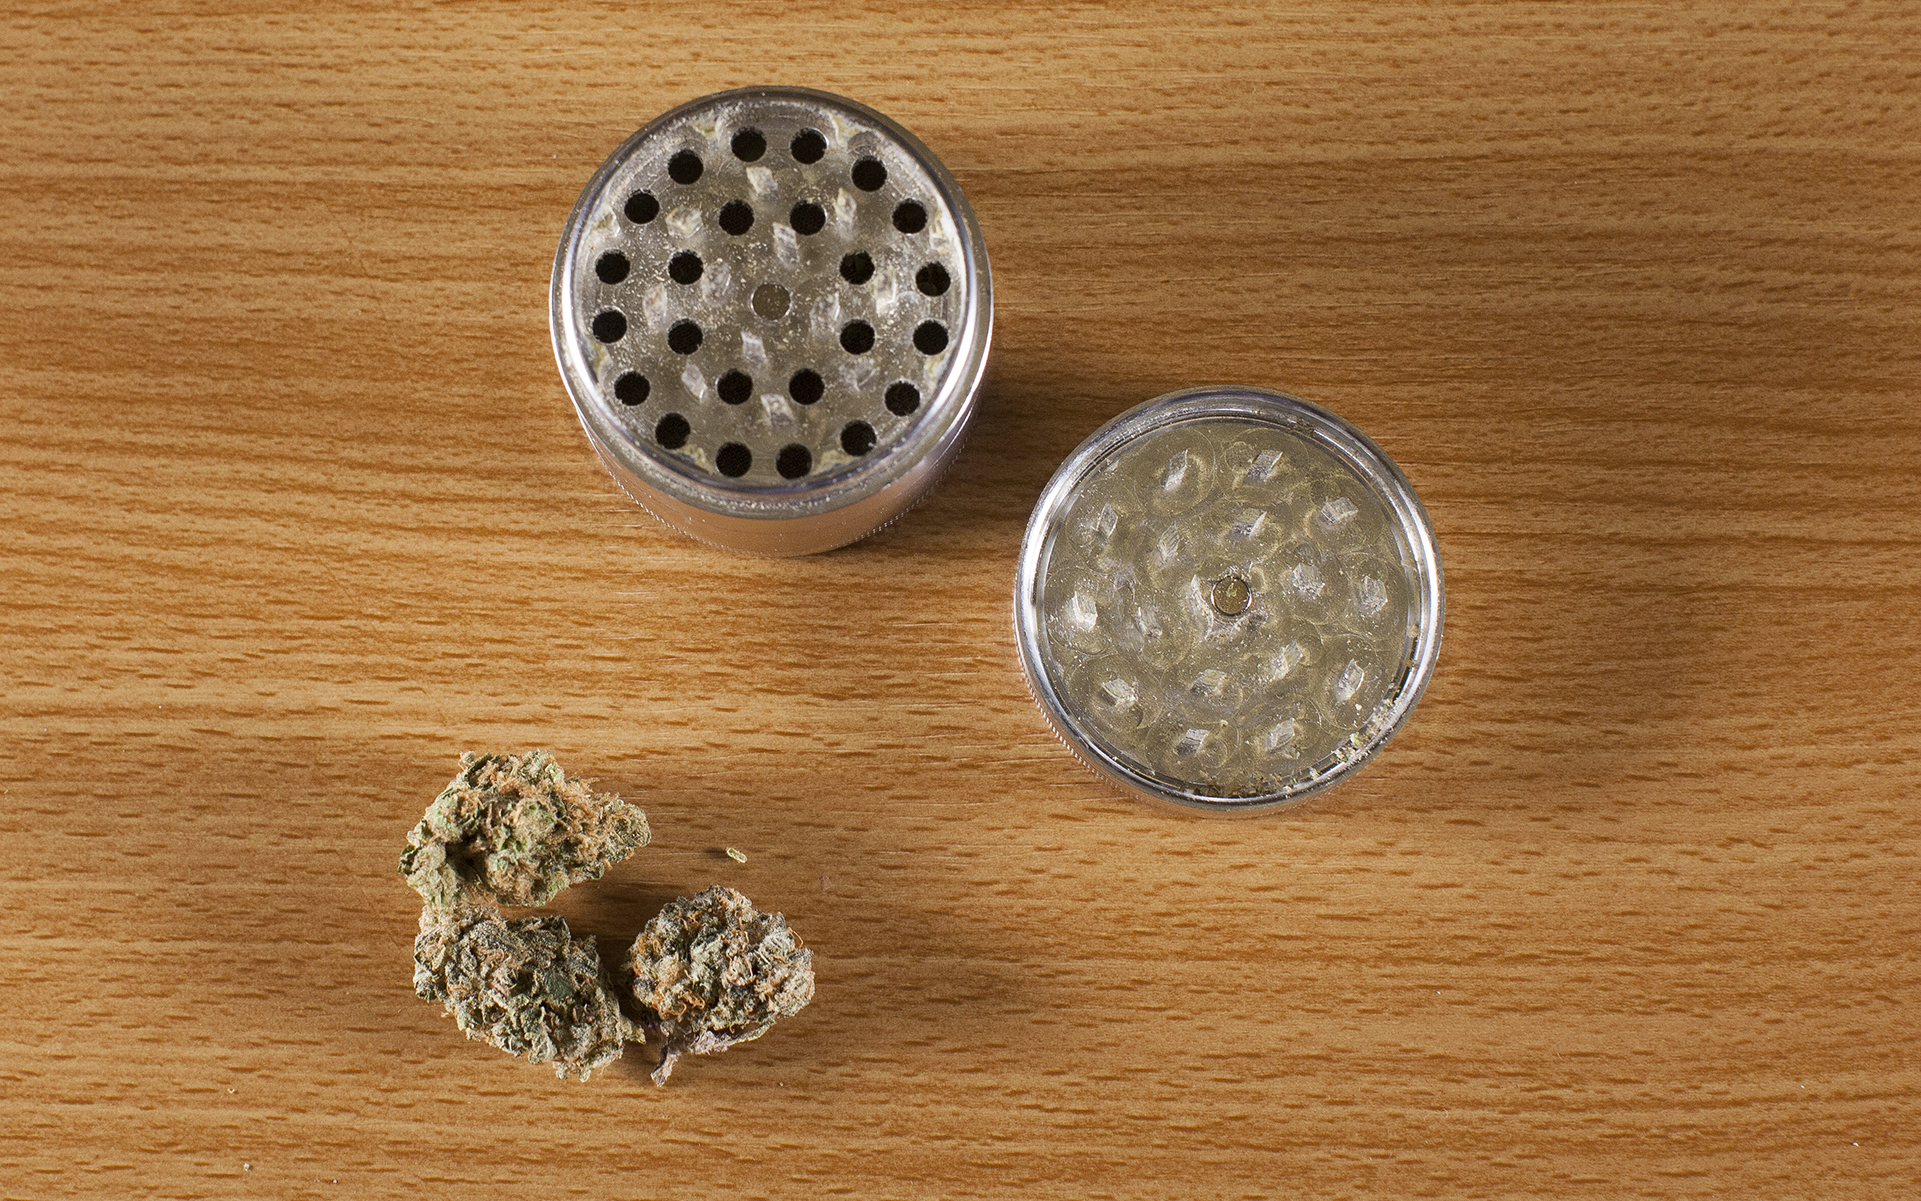 What is a Marijuana Grinder & How Do You Use It? | Leafly